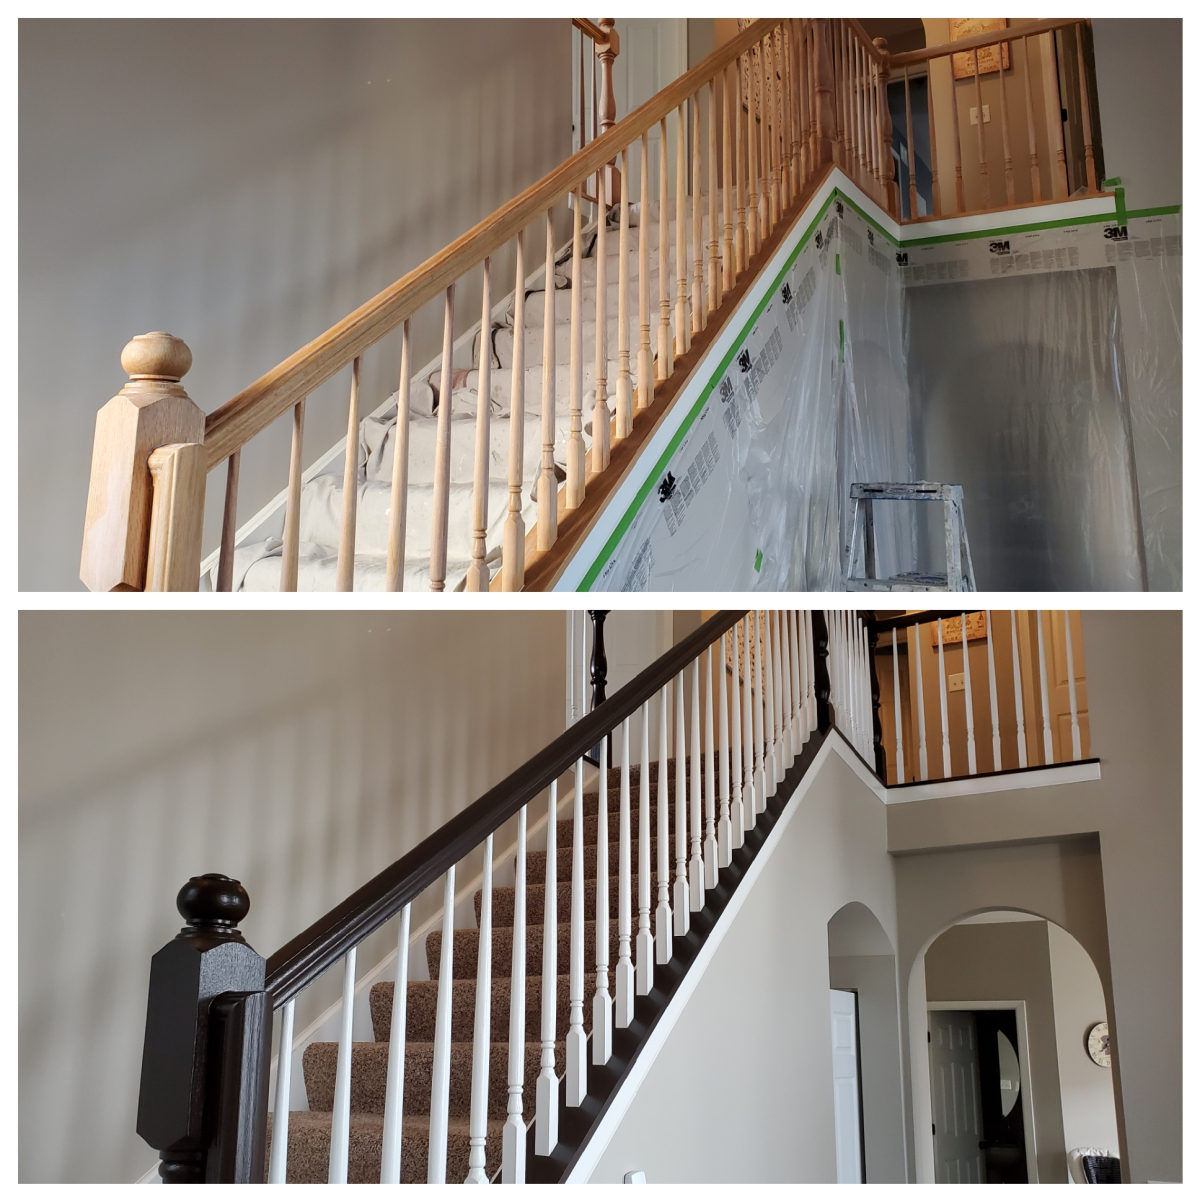 Staircase spindles and railing I painted.